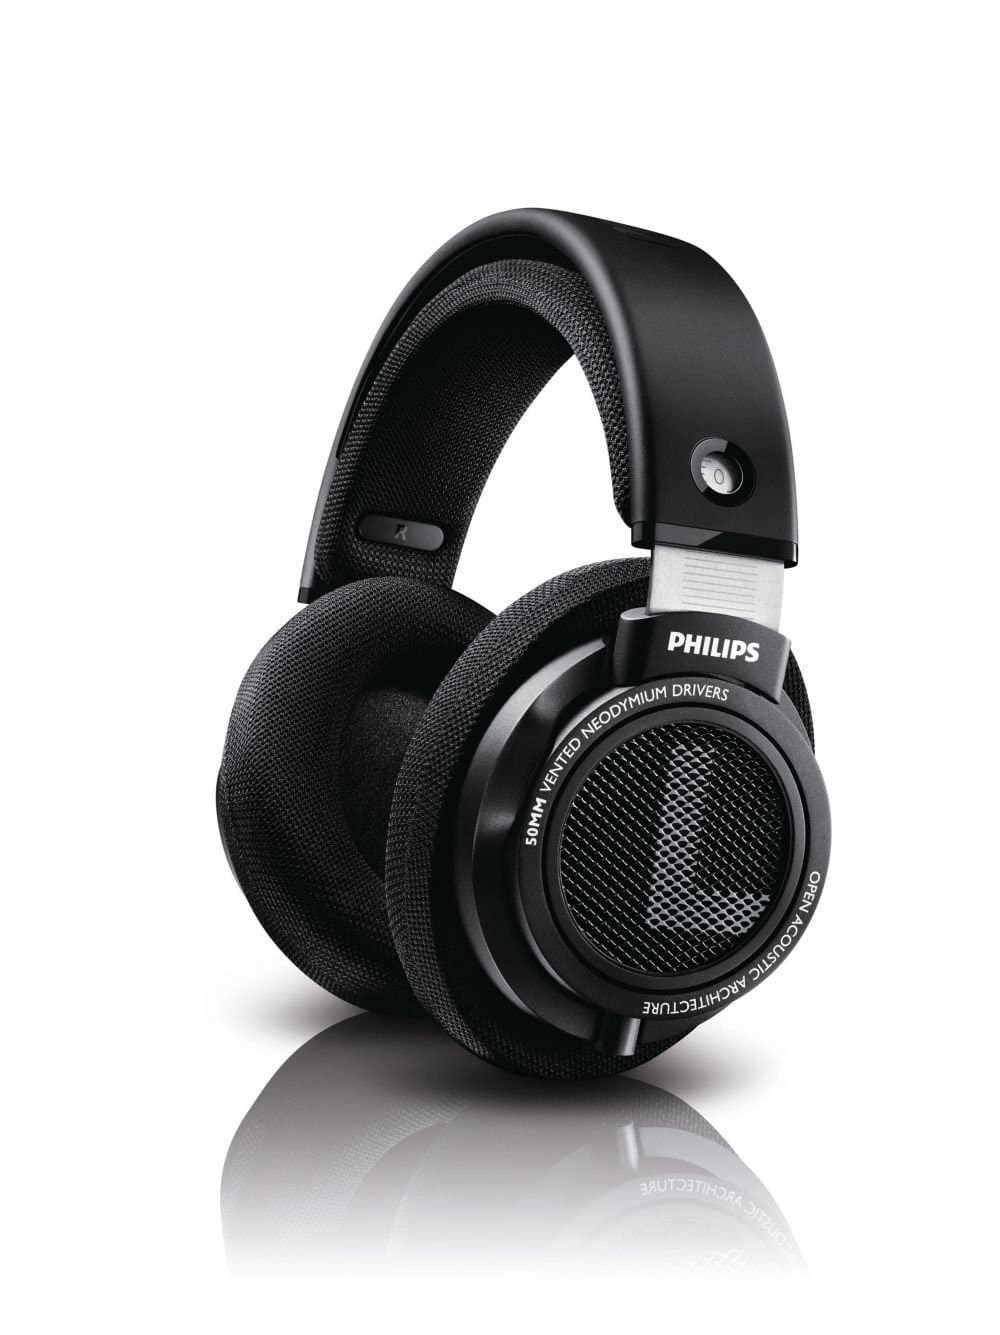 Philips SHP9500 Over-Ear Headphones $50 after $10 Rebate + Free Shipping